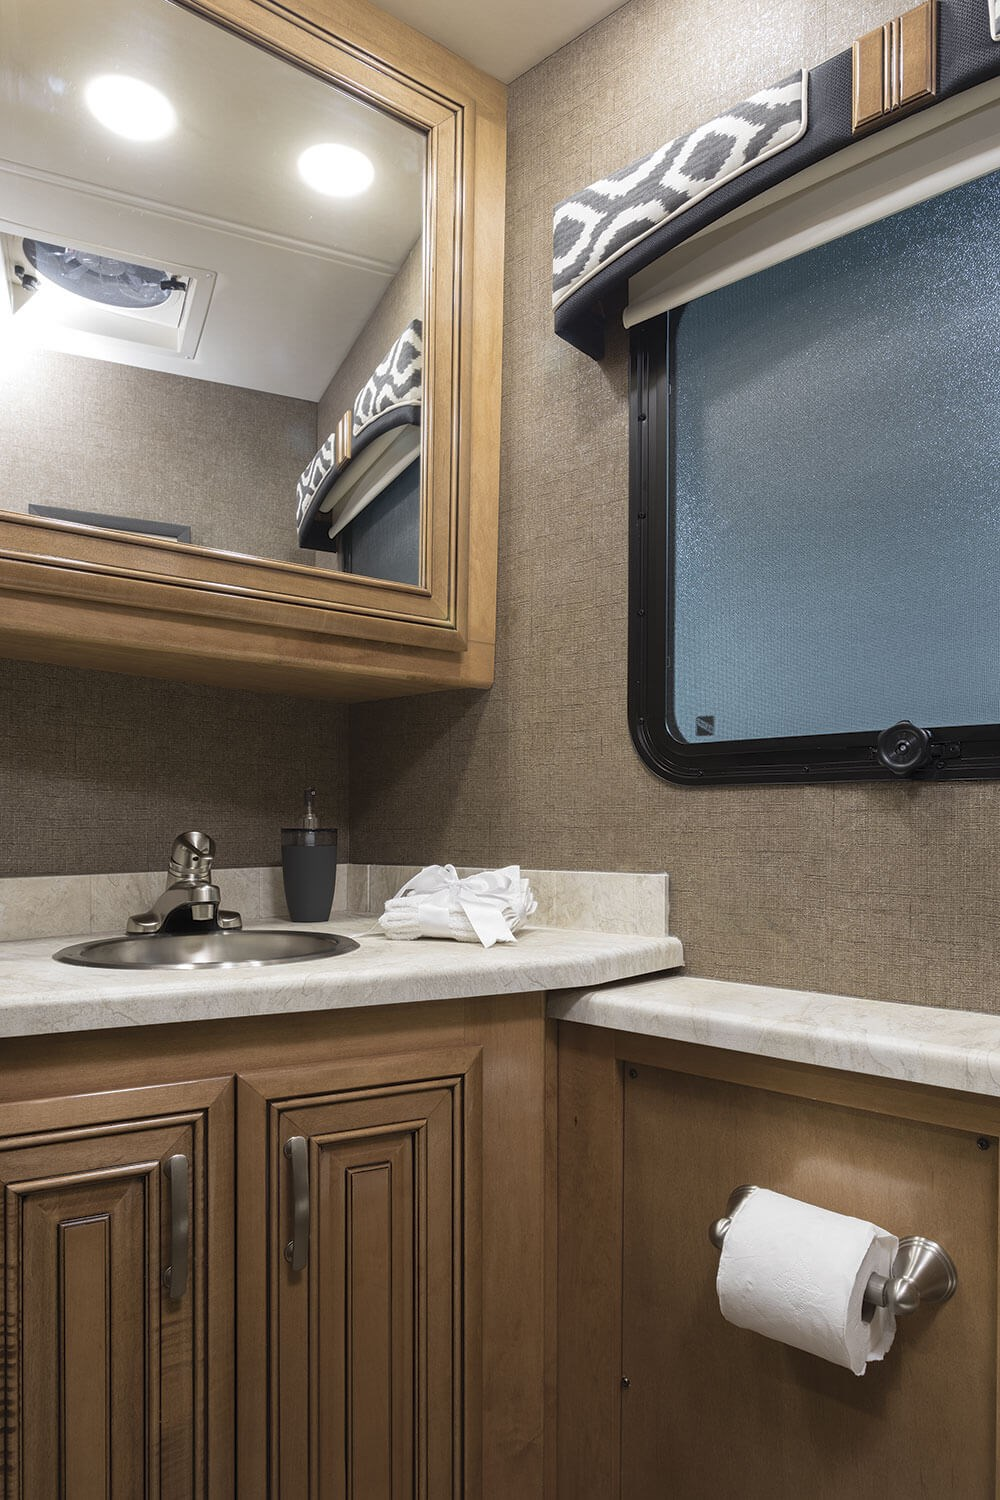 Serrano 32ft diesel - 2018 Palazzo 36 3 Nightfall High Gloss Glazed Newport Half Bathroom